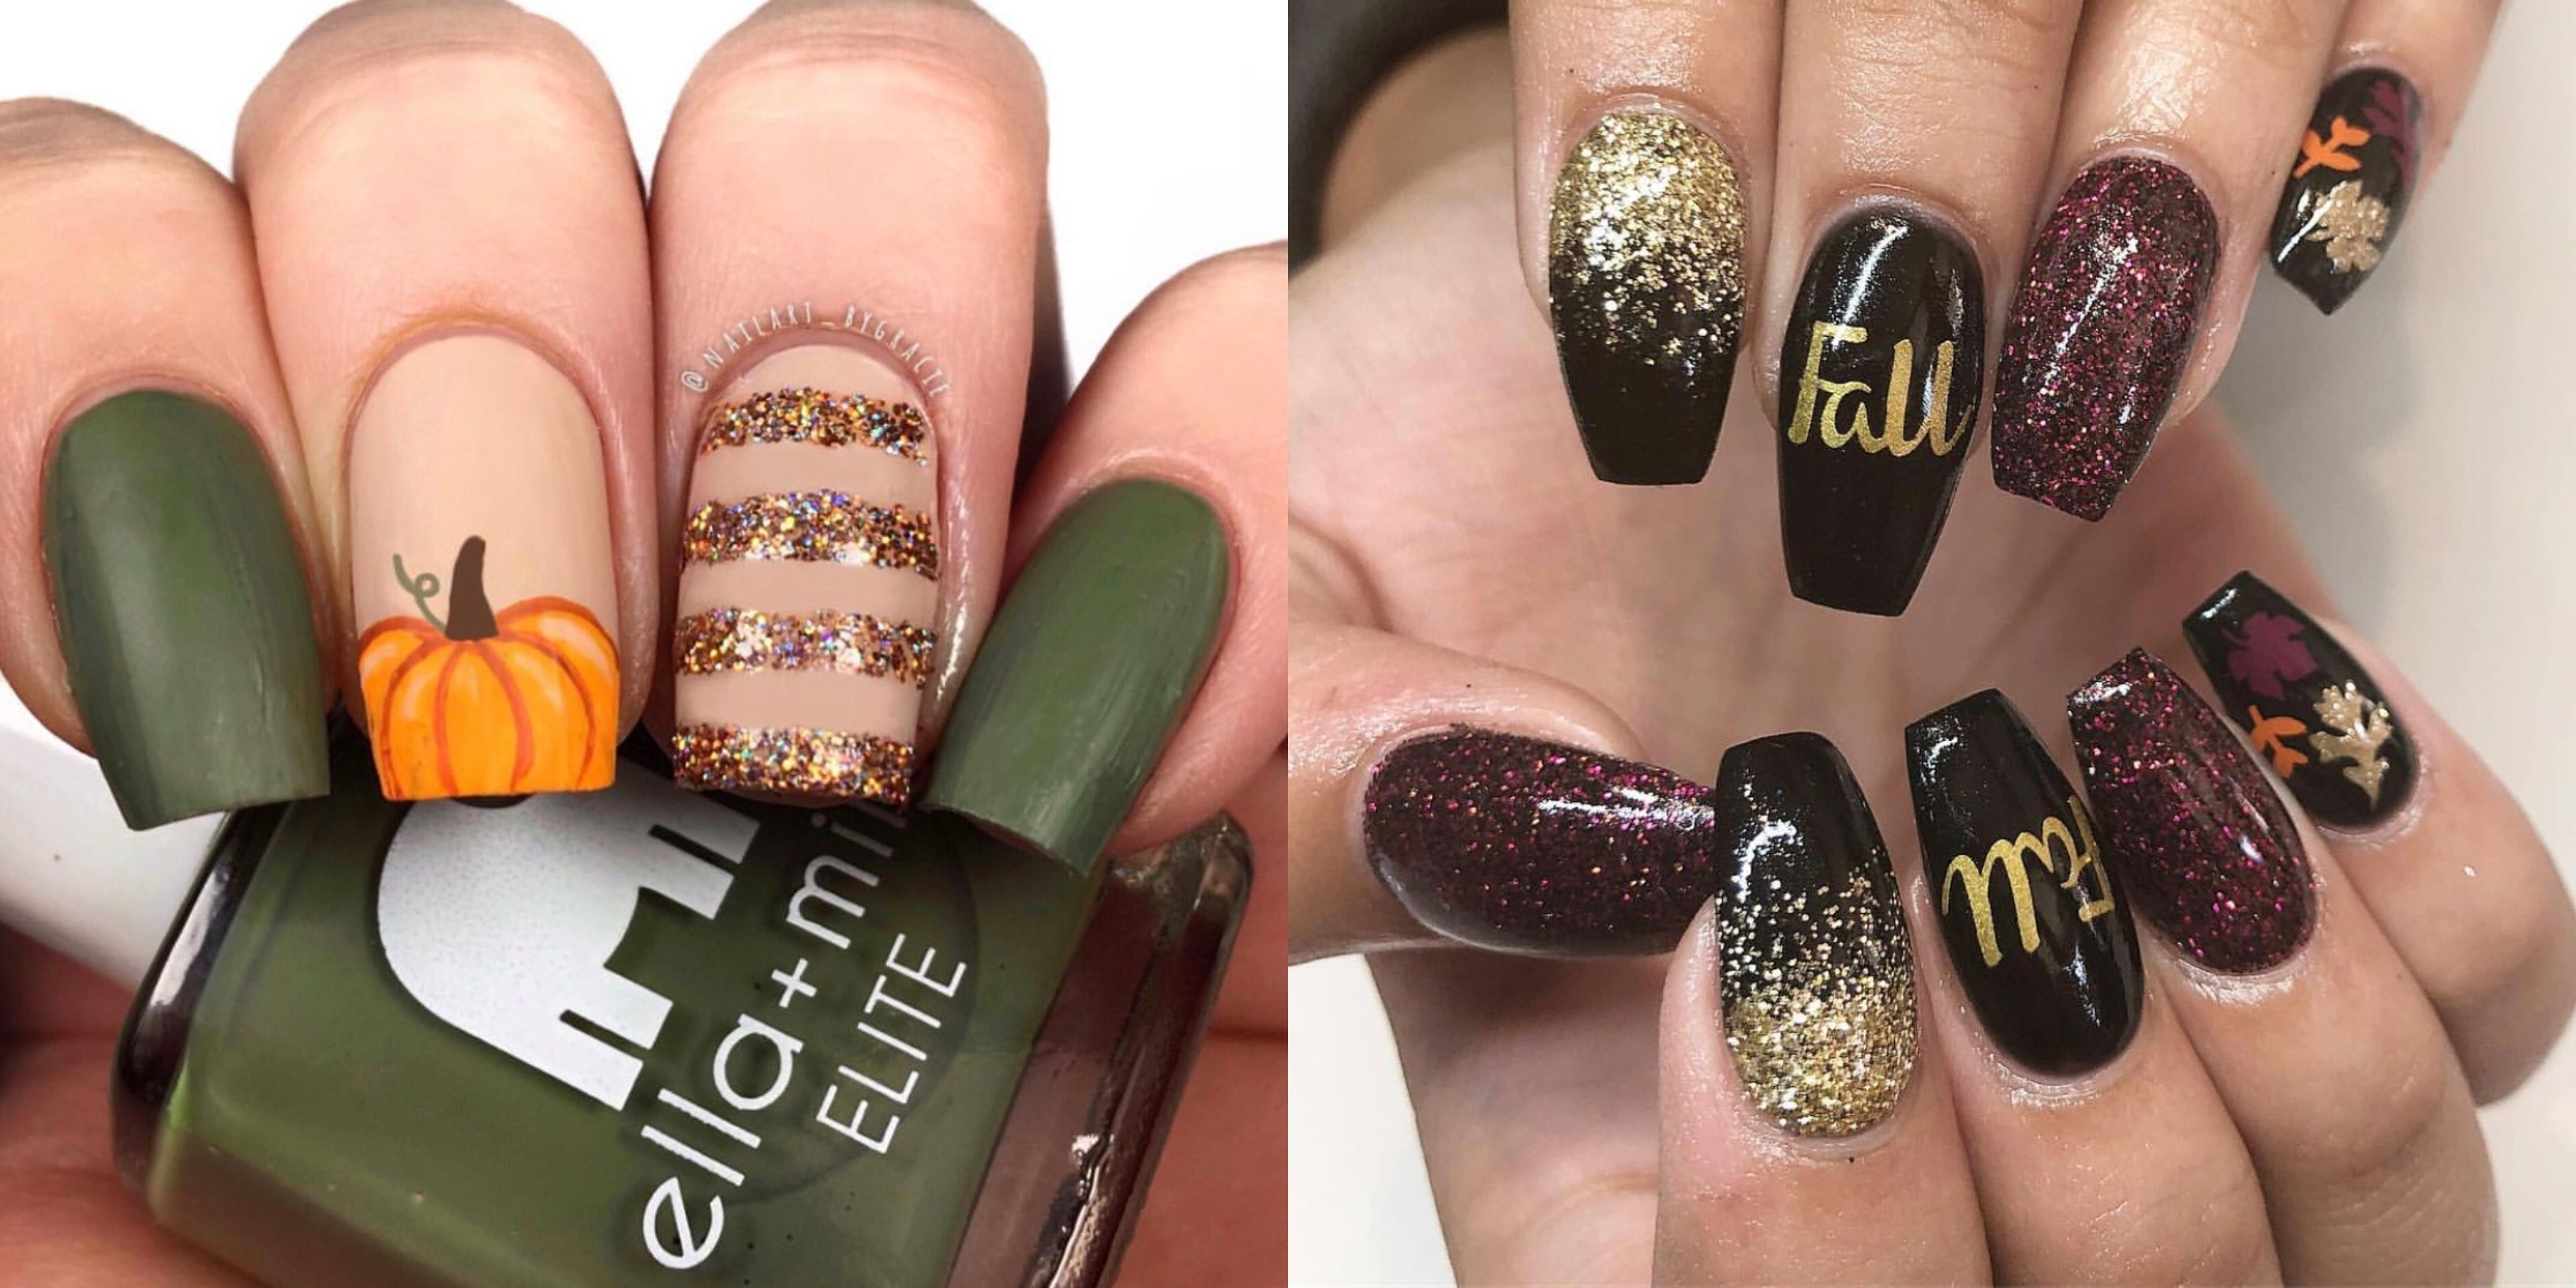 17 Best Fall Nail Designs to Make Your Manicure Stand out This Season